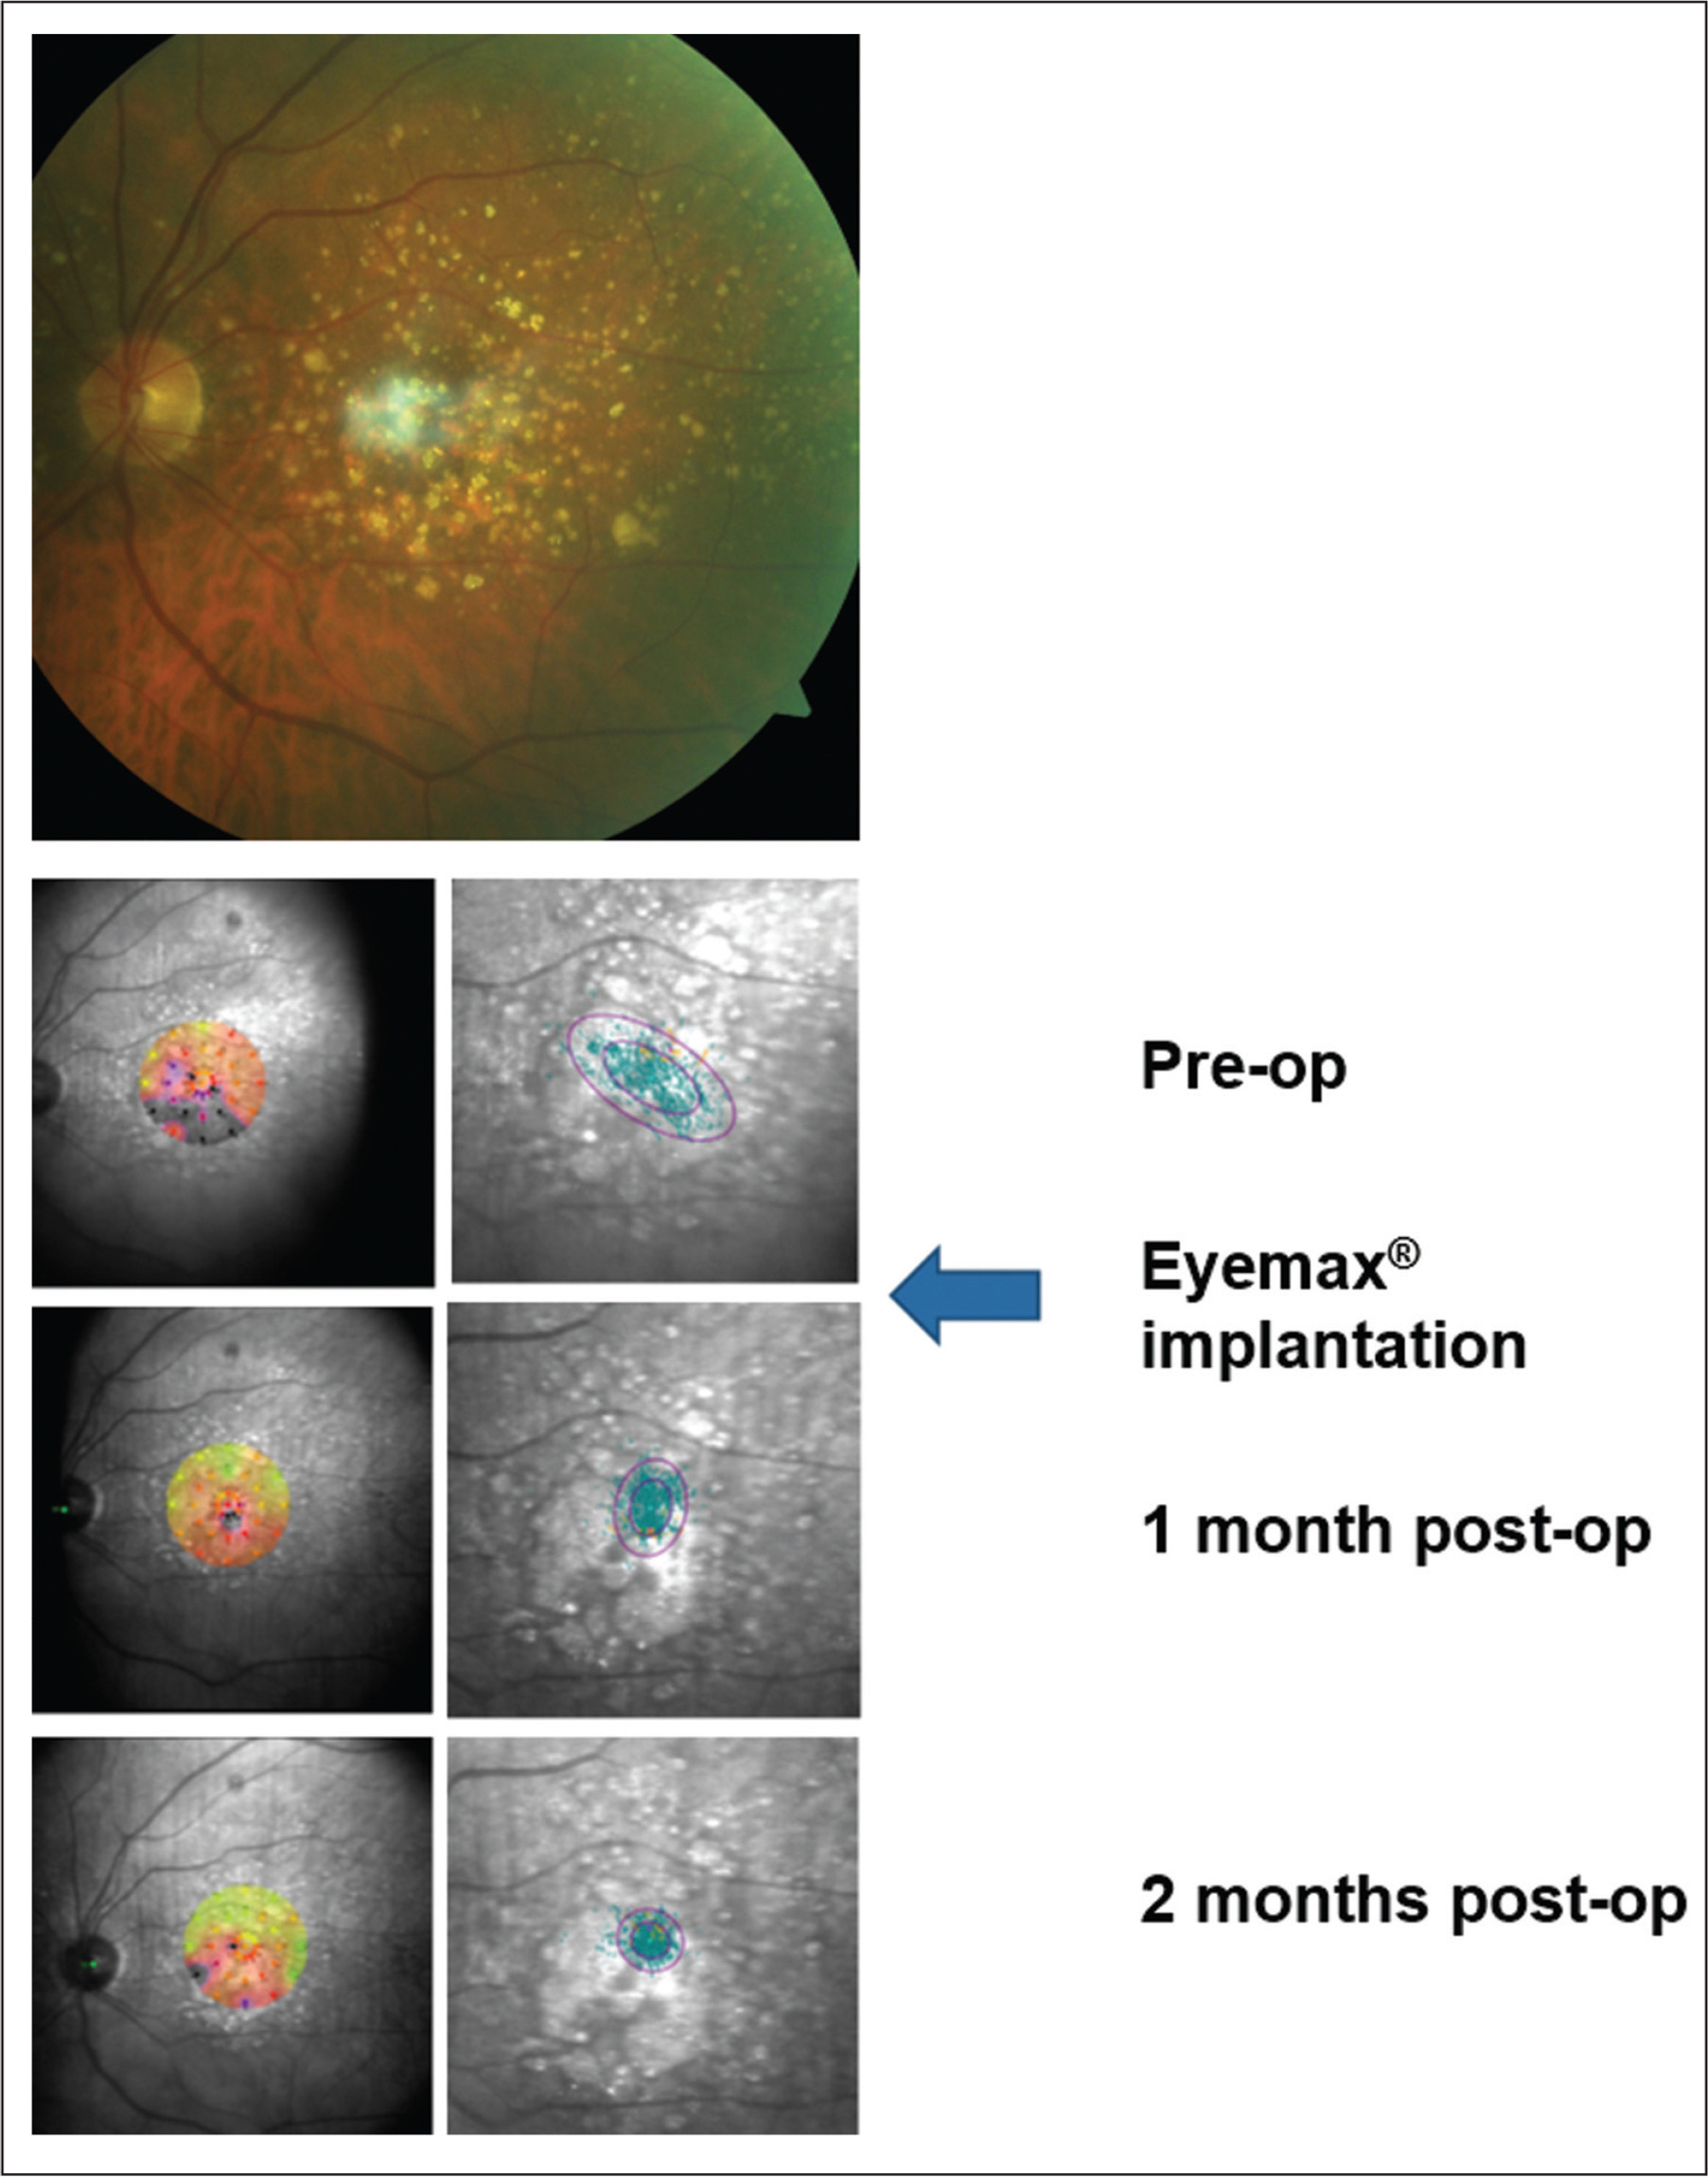 Preoperative color fundus photograph and microperimetric images obtained at baseline and 2 and 4 months after implantation of the Eyemax mono intraocular lens (IOL) (LEH Pharma, London, United Kingdom) (eye 7). Color fundus photograph of the left eye in an 84-year-old man (top panel) confirming patchy geographic atrophy and associated drusen. Left panels show baseline and post-implantation interpolated sensitivity maps demonstrating the sensitivity at each point of the retina using information from nearby stimuli. Right panels show fixation points (blue dots; orange fixation dots represent points used in the first 10 seconds of the test) with bivariate contour ellipse area analysis; the smaller ellipse contains 63% of all fixation points and the larger ellipse contains 95% of all fixation points. Threshold sensitivity at baseline is observed to be reduced (9.5 dB) and fixation points are spread over a wide area. Threshold sensitivities were observed to have increased at 1 and 2 months postoperatively (average threshold sensitivities 15.4 and 17.1 dB, respectively); these changes are associated with a progressively more tightly focused cluster of fixation points centered outside of the area of geographic atrophy (mean percentage of fixation points within a 4° circle increased from 66% at baseline to 97% at 1 month and 98% at 2 months postoperatively).